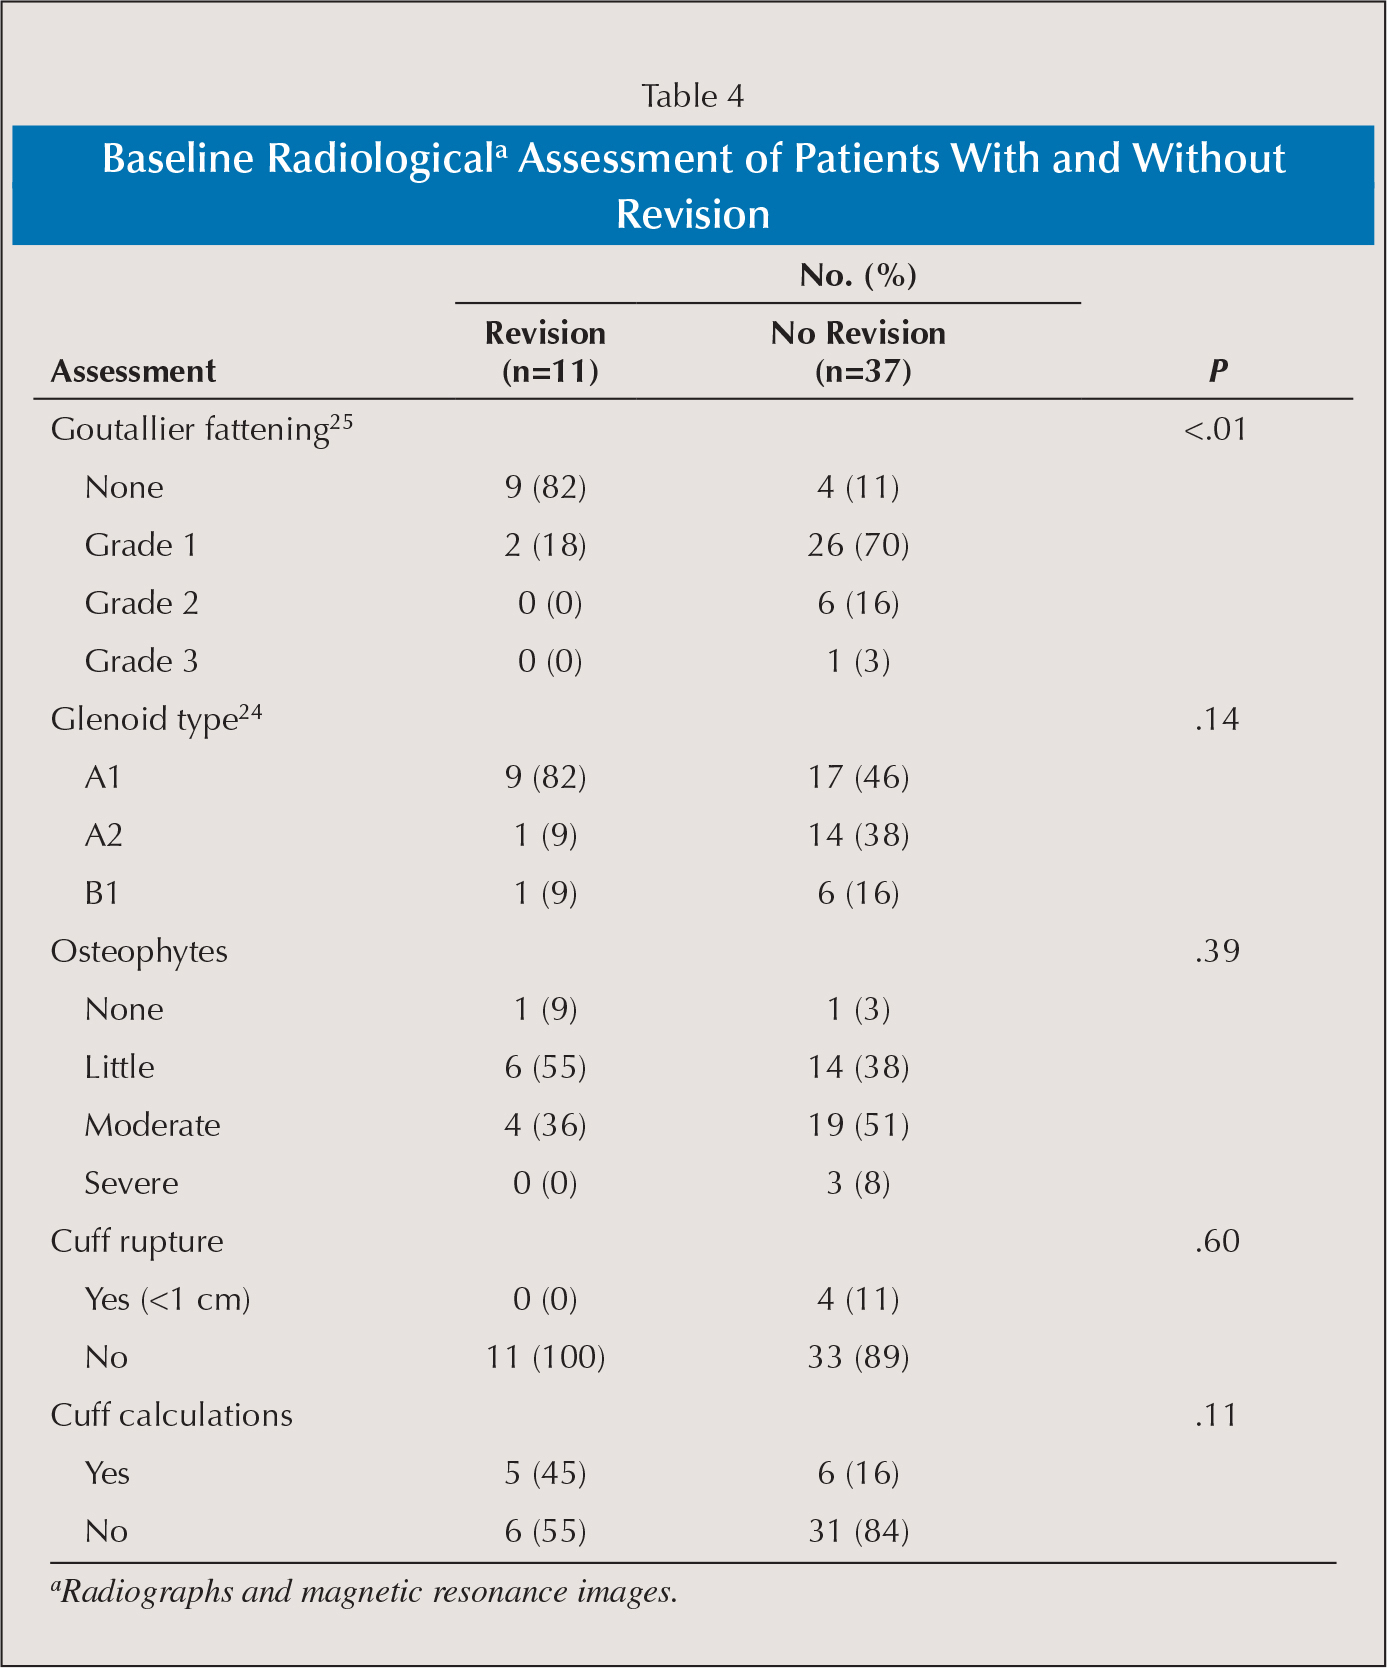 Baseline Radiologicala Assessment of Patients With and Without Revision